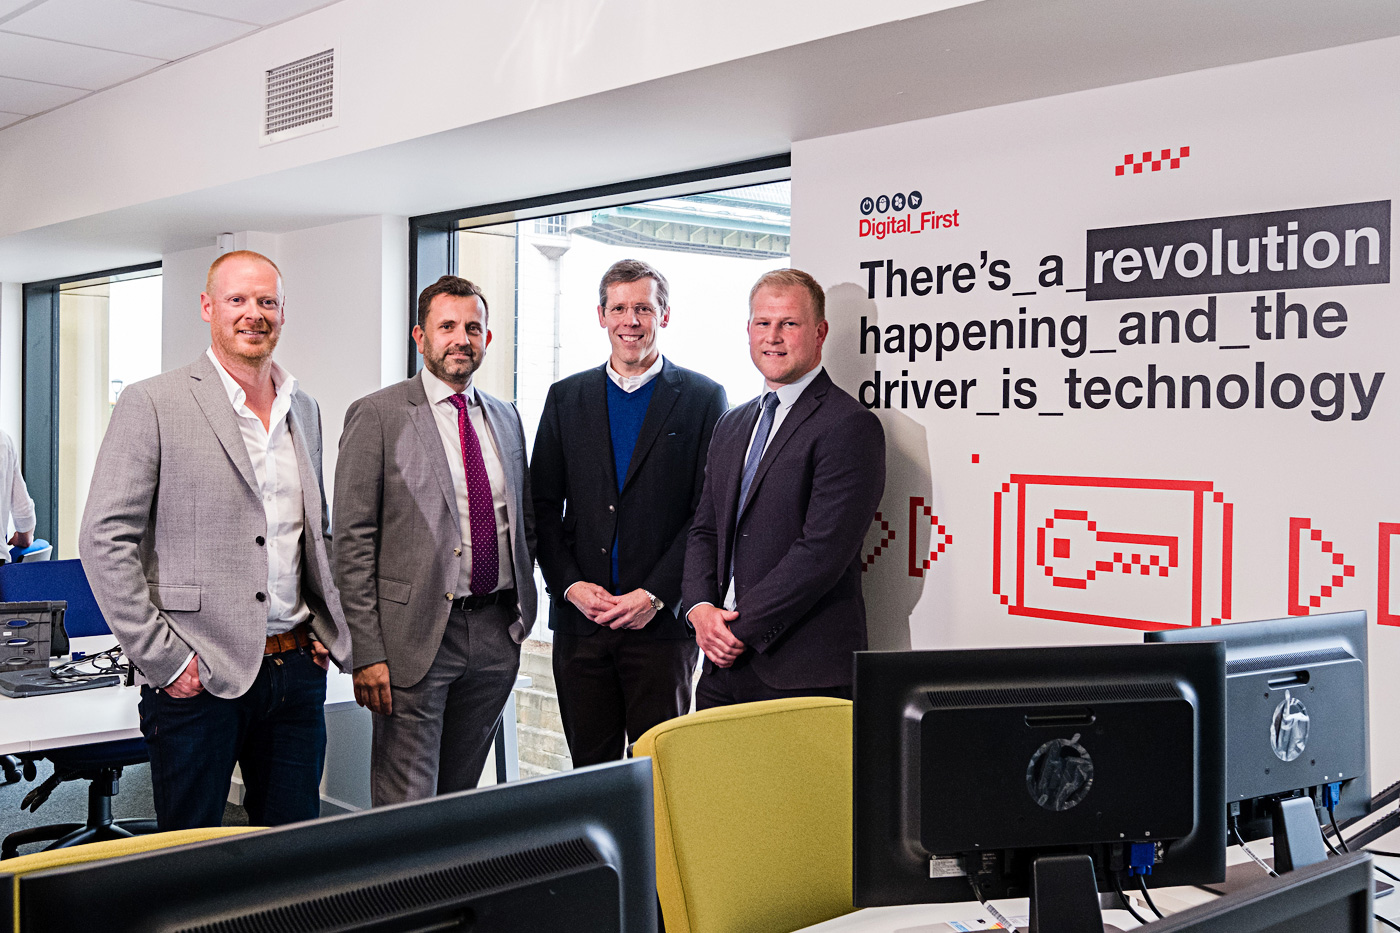 From left, Arco Digital Director Richard Martin, Wykeland Group Managing Director Dominic Gibbons, Arco Chief Executive Neil Jowsey and Wykeland Asset Manager John Gouldthorp at the new offices for Arco's digital team in Wykeland's @TheDock development.